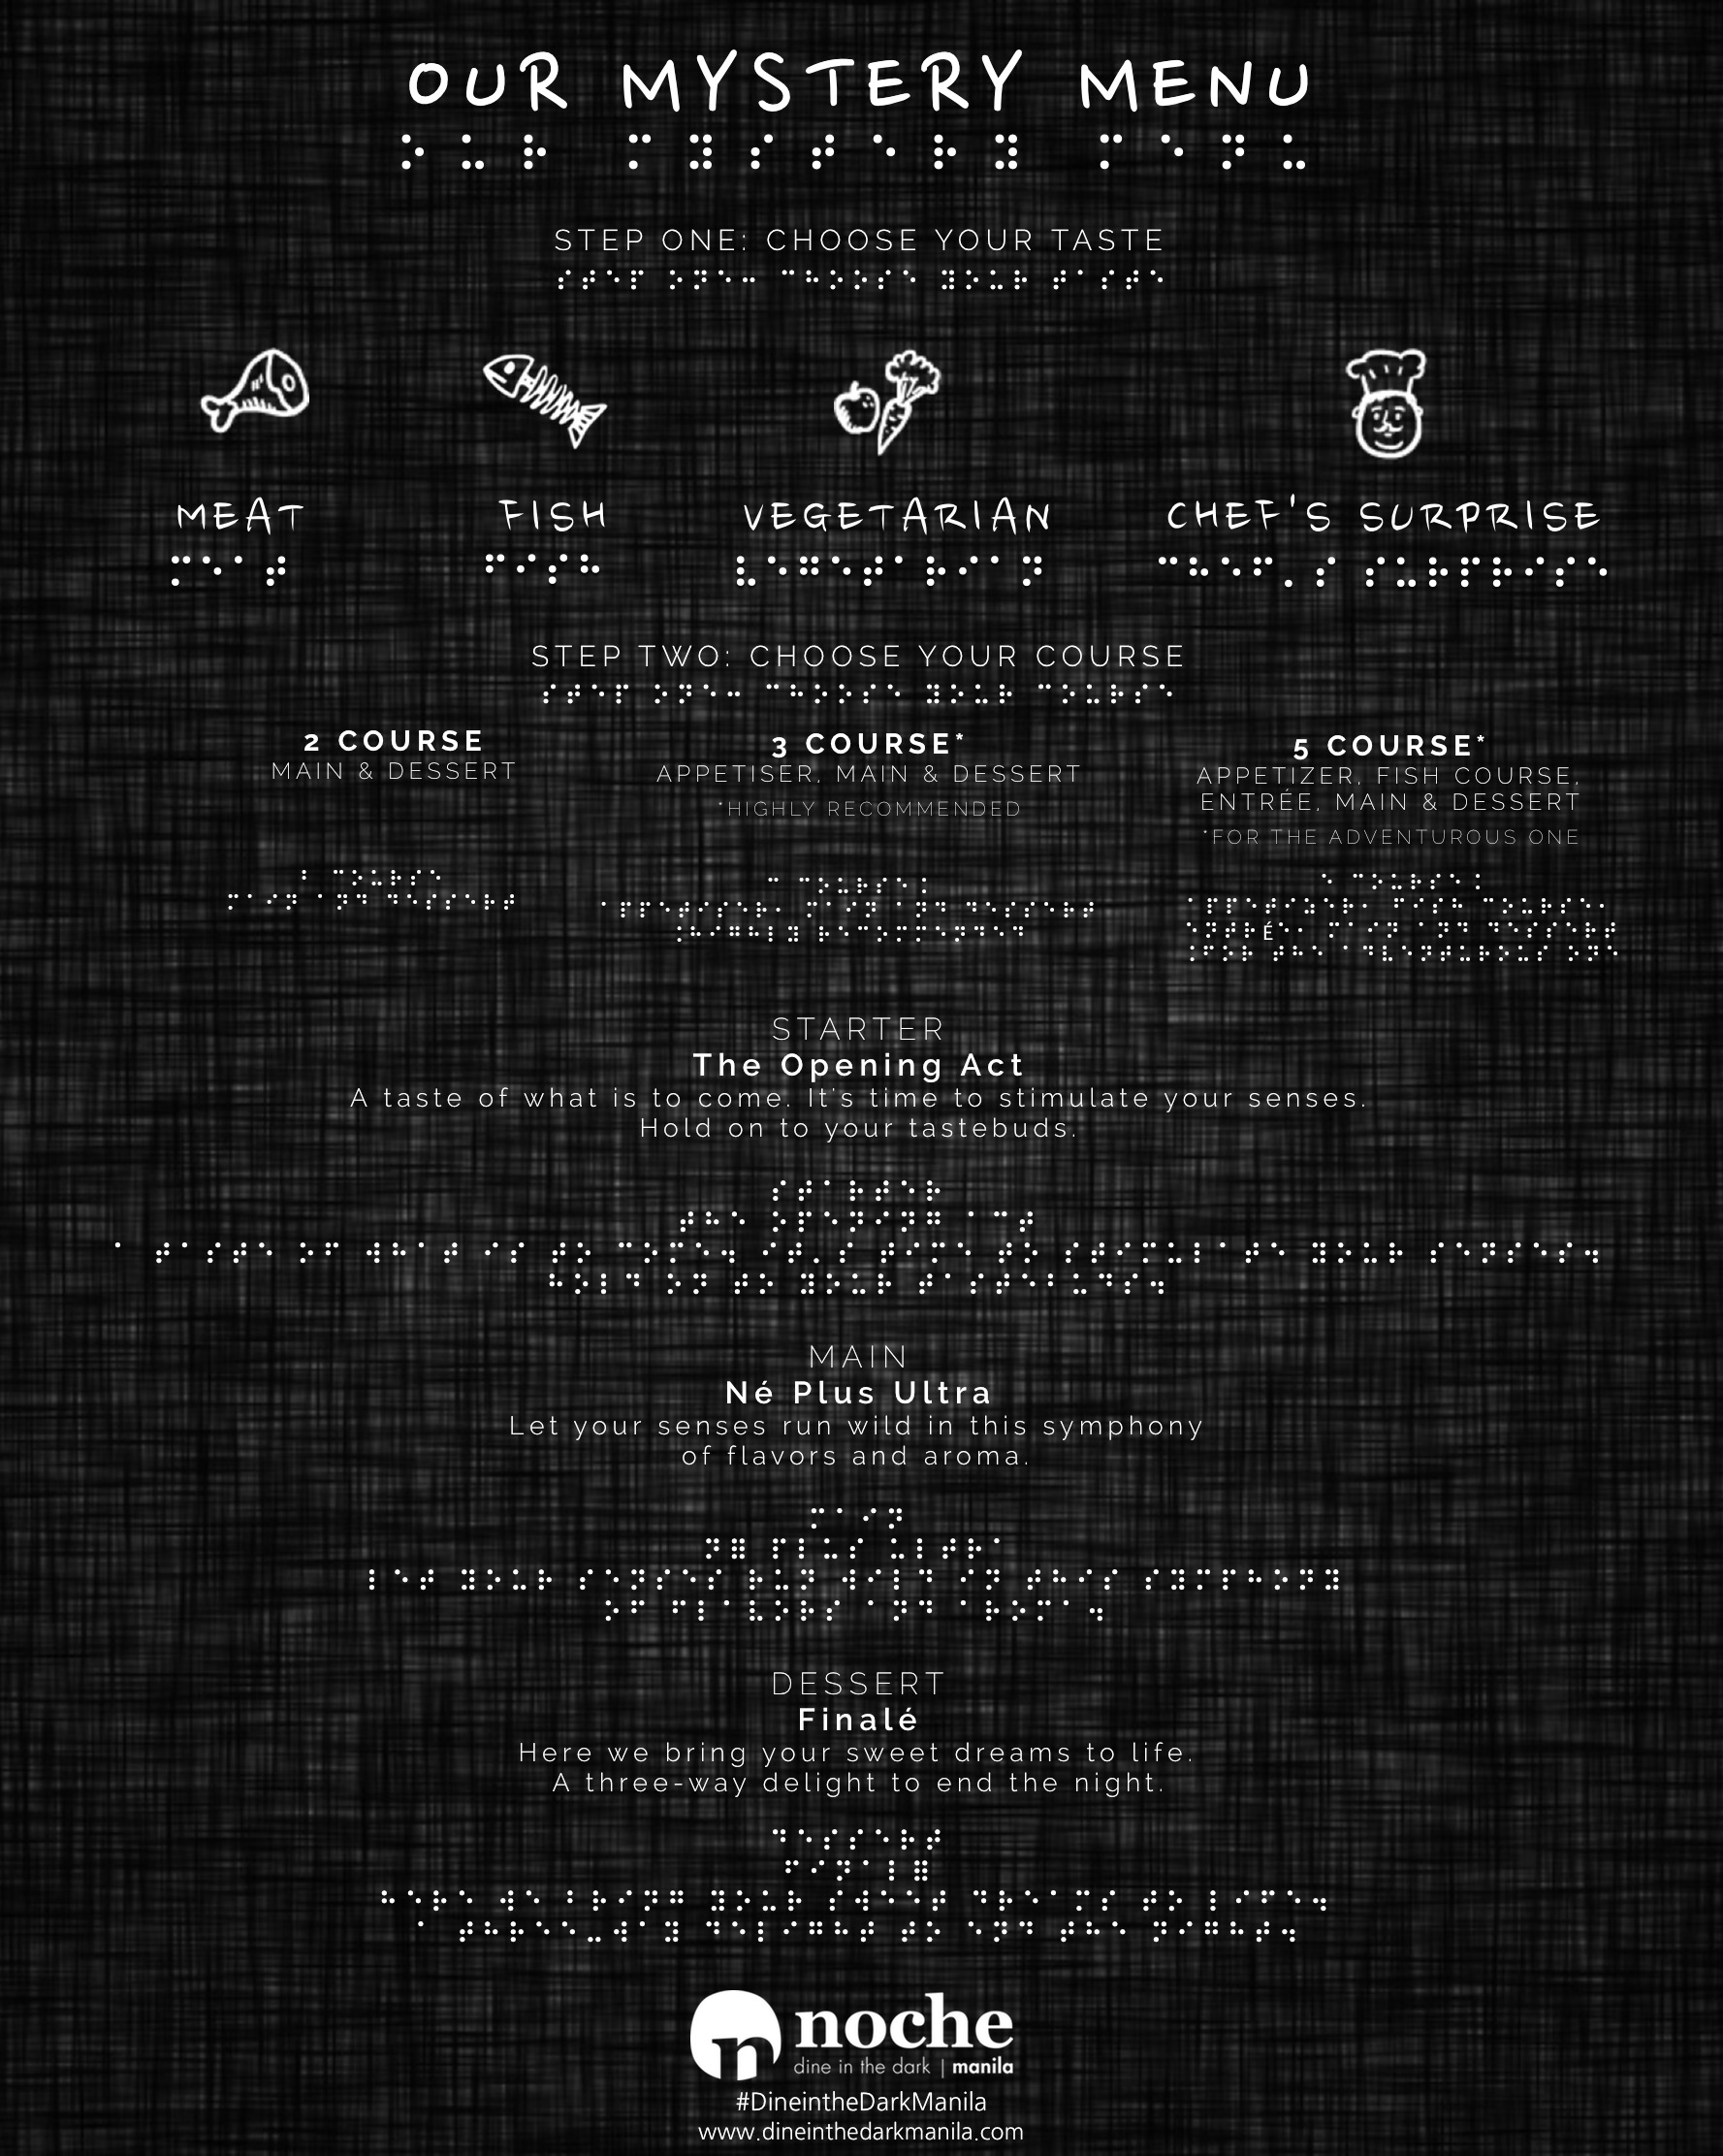 noche-dine-in-the-dark-manila-menu-final